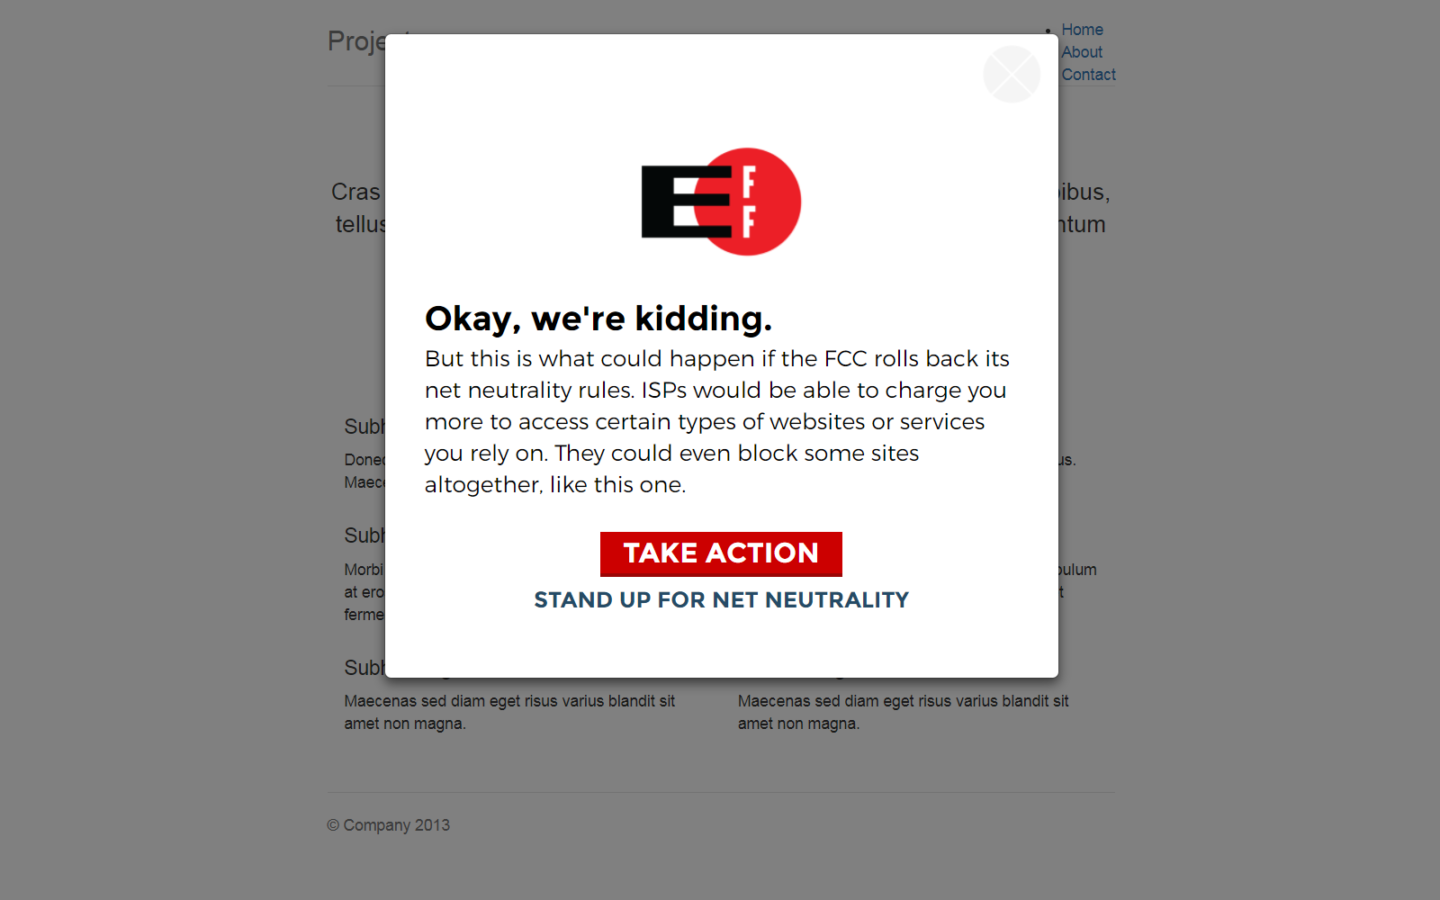 Users can stand up for net neutrality by submitting a letter to the FCC and Congress (Source: EFF).